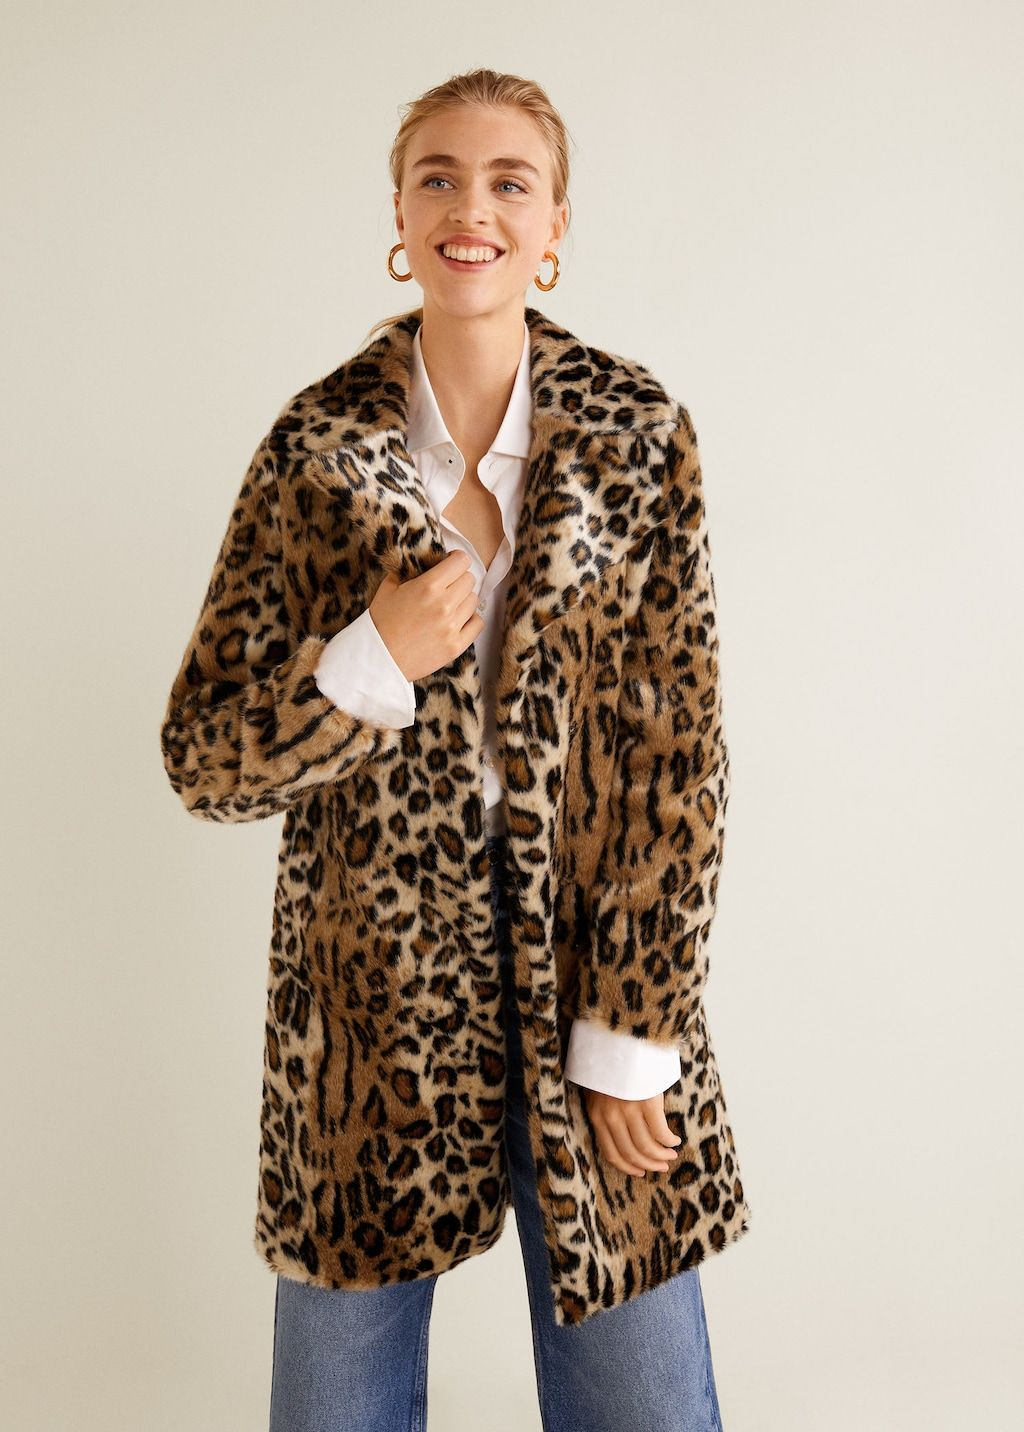 011a2f9d2944 Leopard faux-fur coat - Women   Clothes to the Max and also other ...